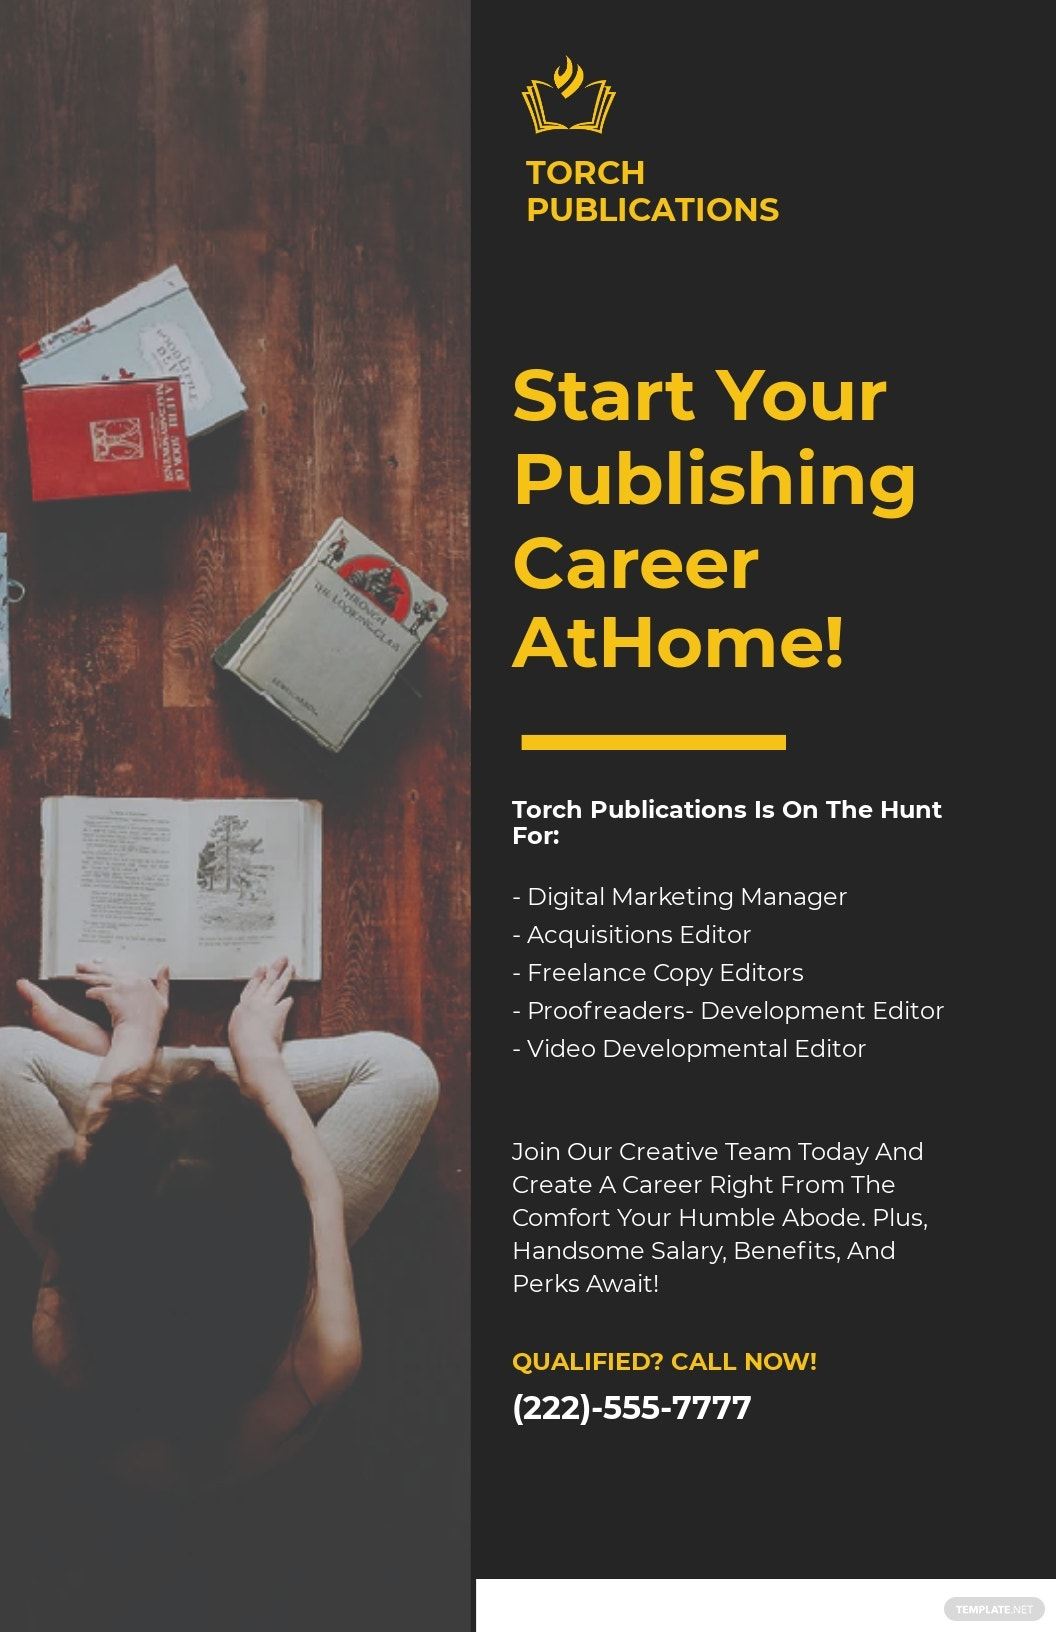 Free Sample Work From Home Poster Template.jpe